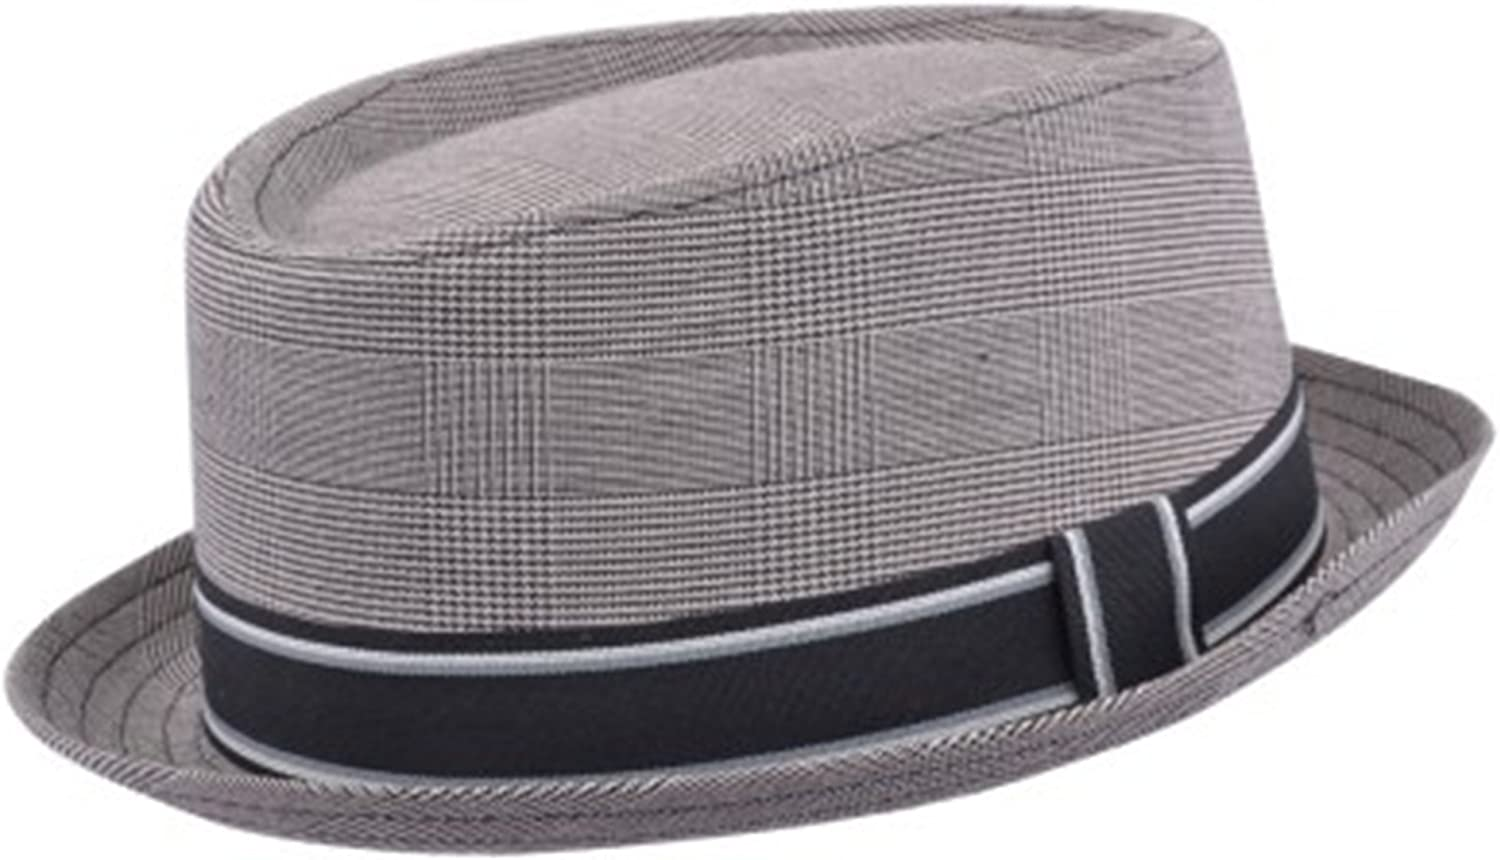 MAZ Adult Unisex Porkpie Classic Cotton Blend Pork Pie Trilby Hat with Stripey Band